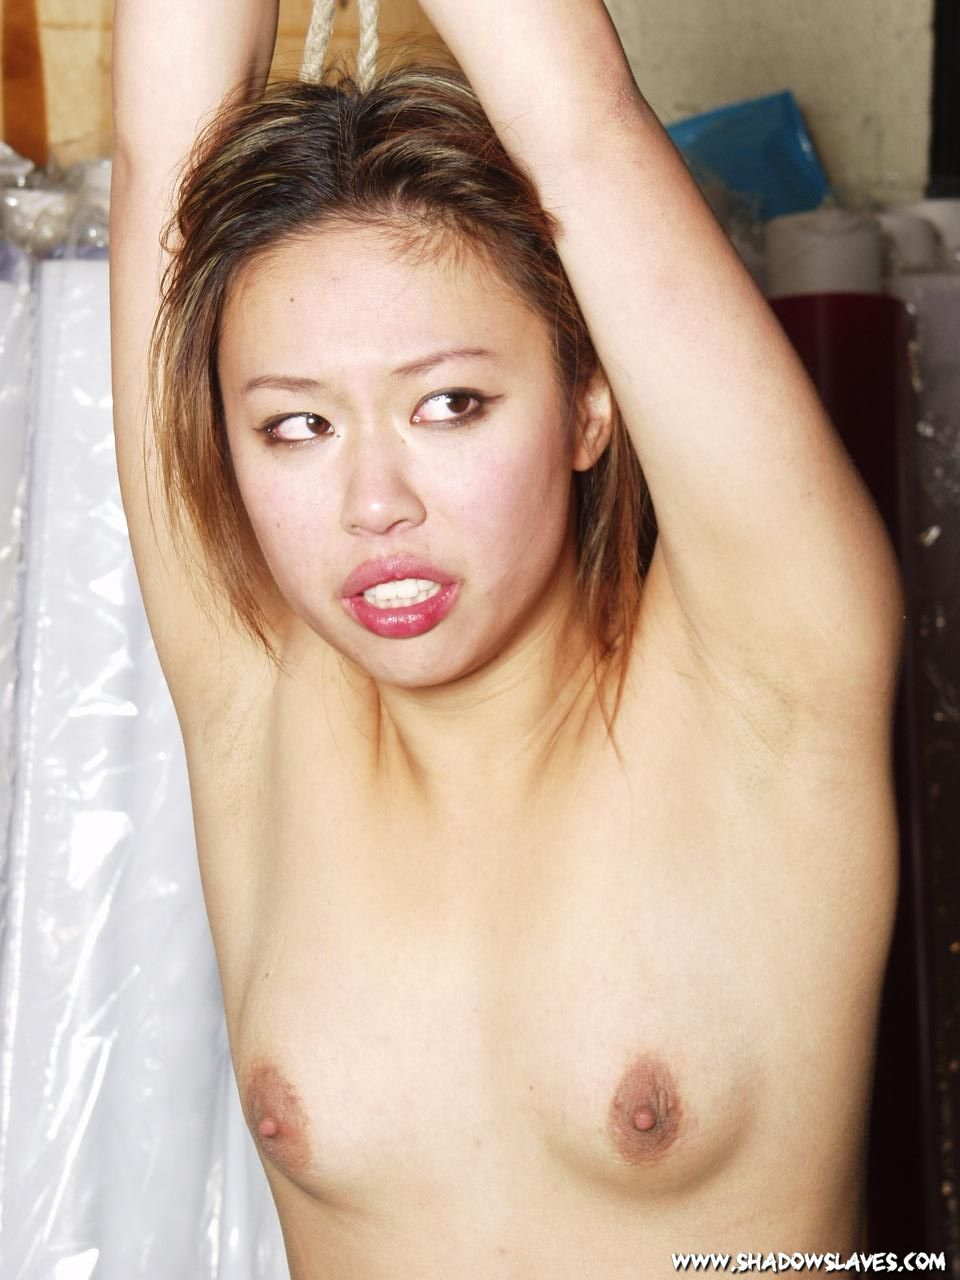 Asian fuck nude pussy painful think, that